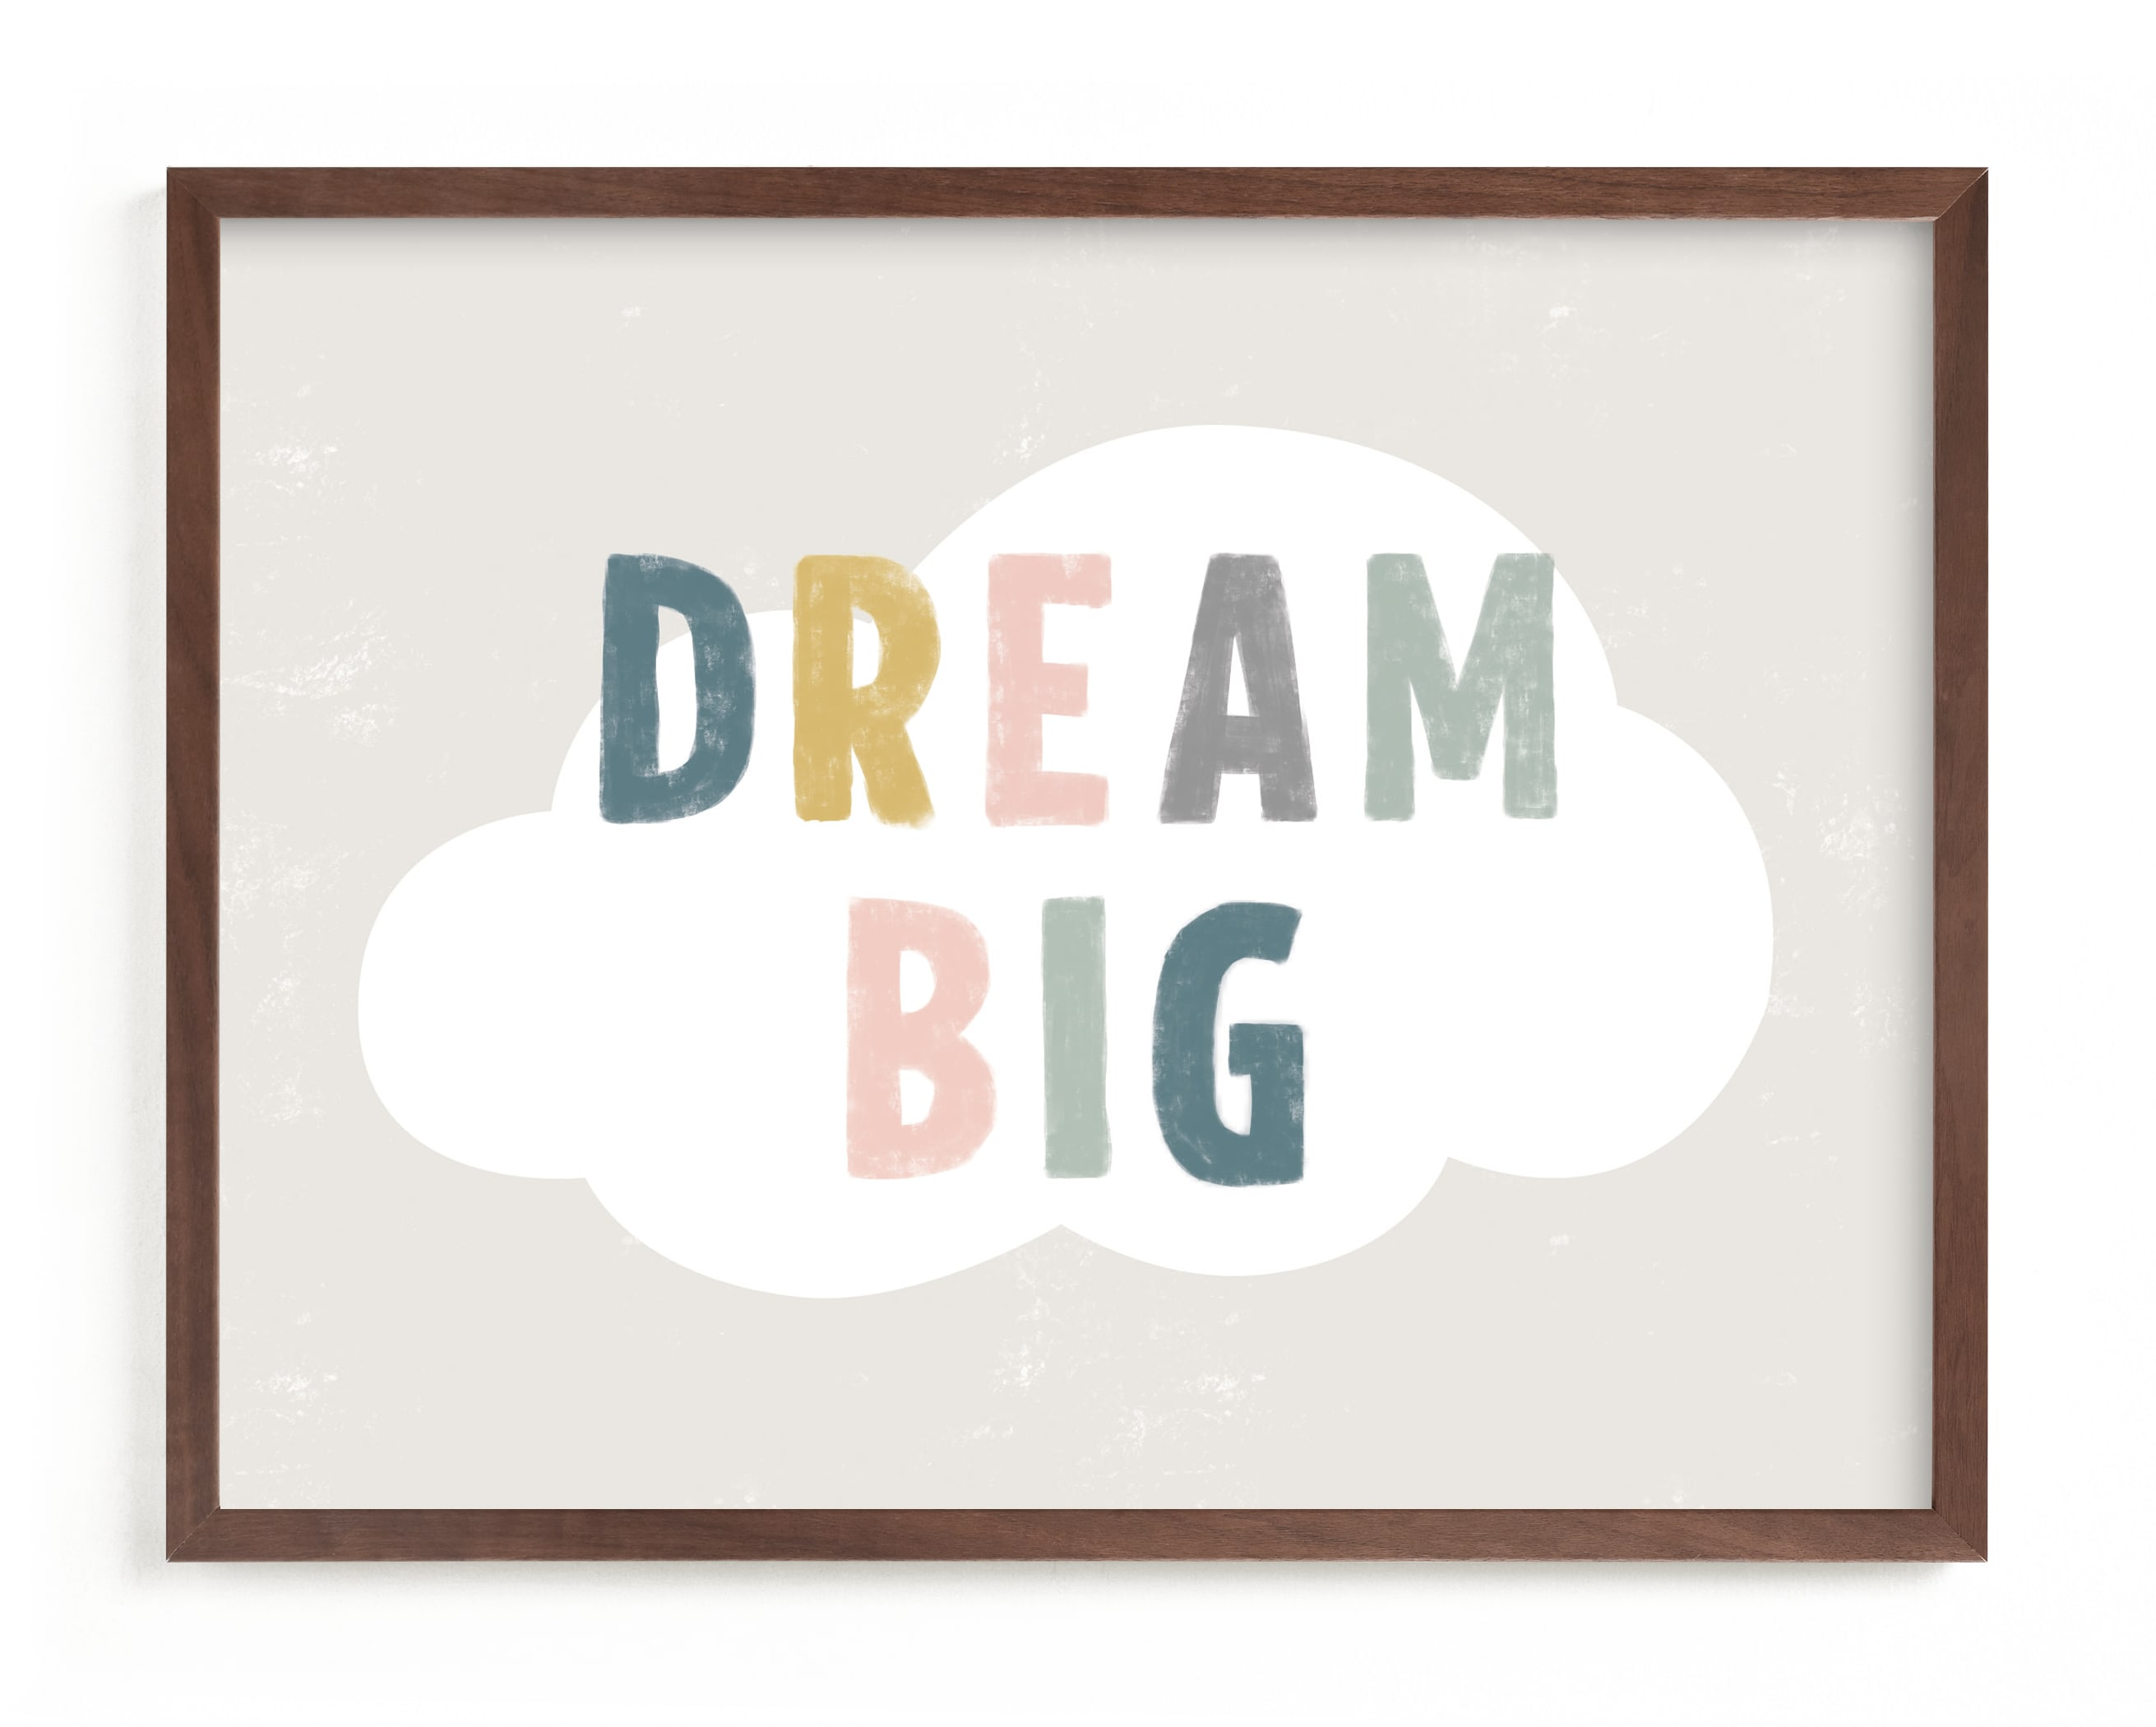 This is a colorful nursery wall art by Pixel and Hank called Dream BIG with standard.